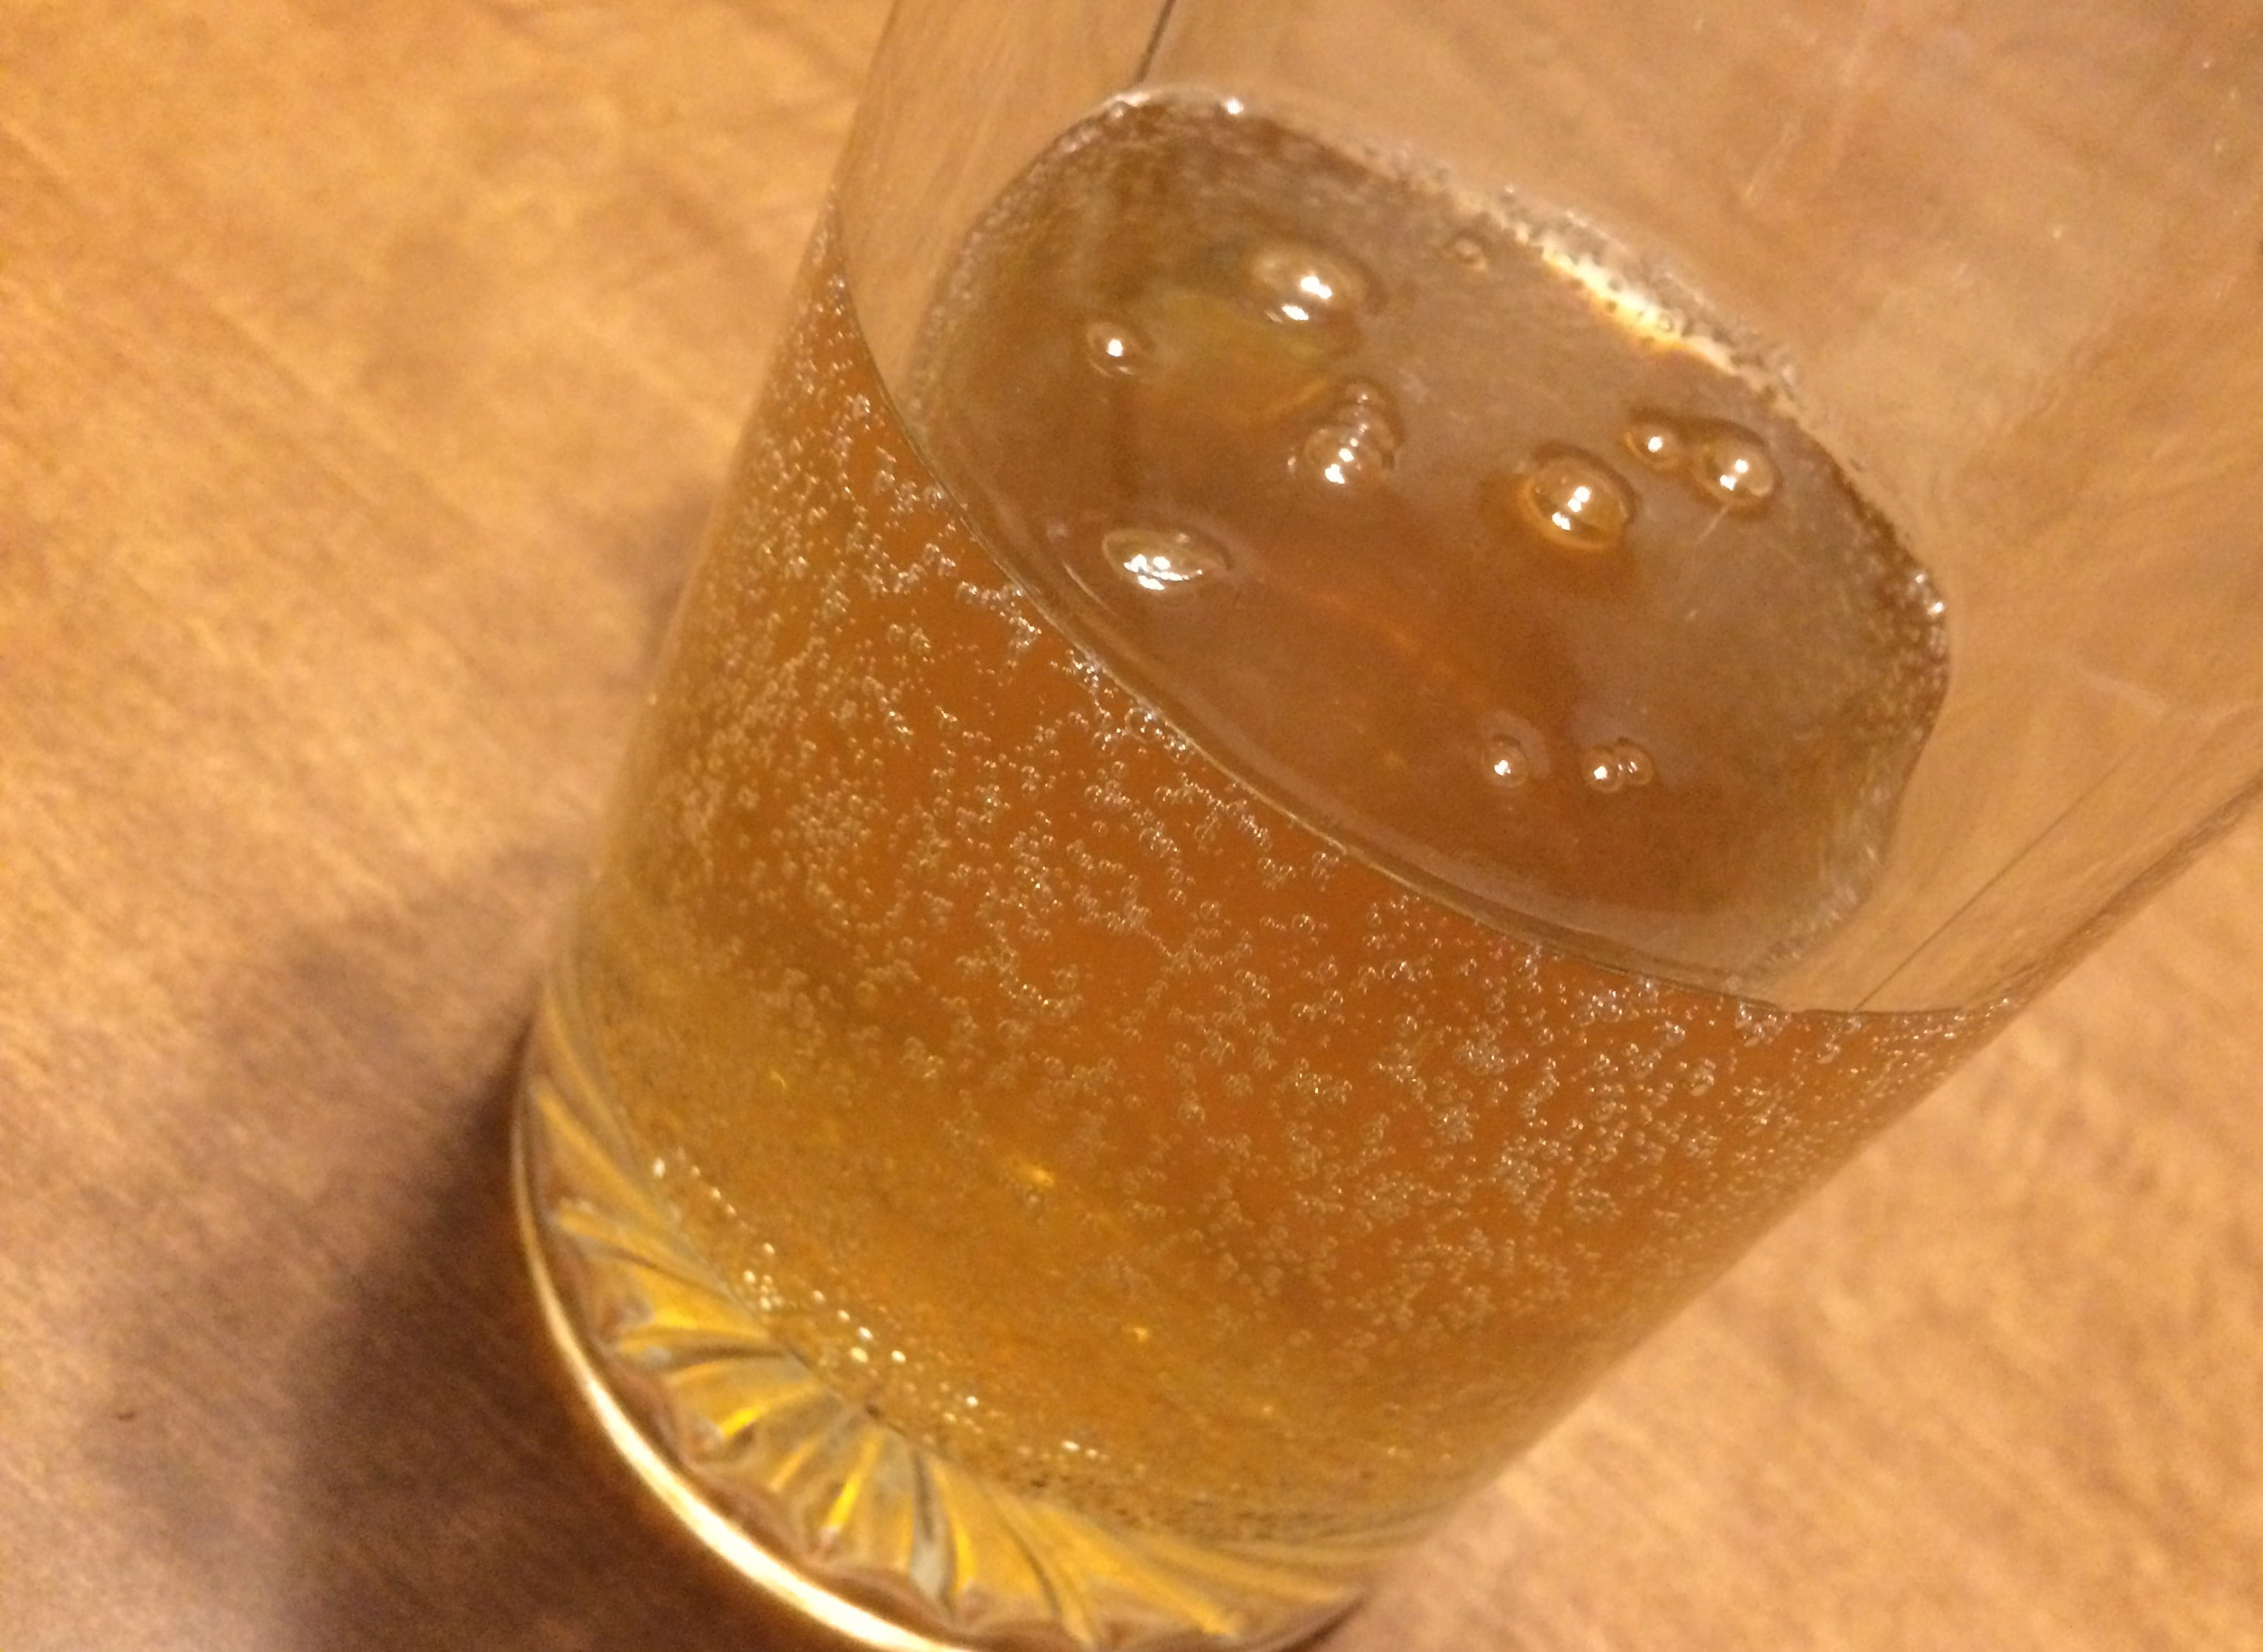 A bubbly glass of fermented gluten-free beer